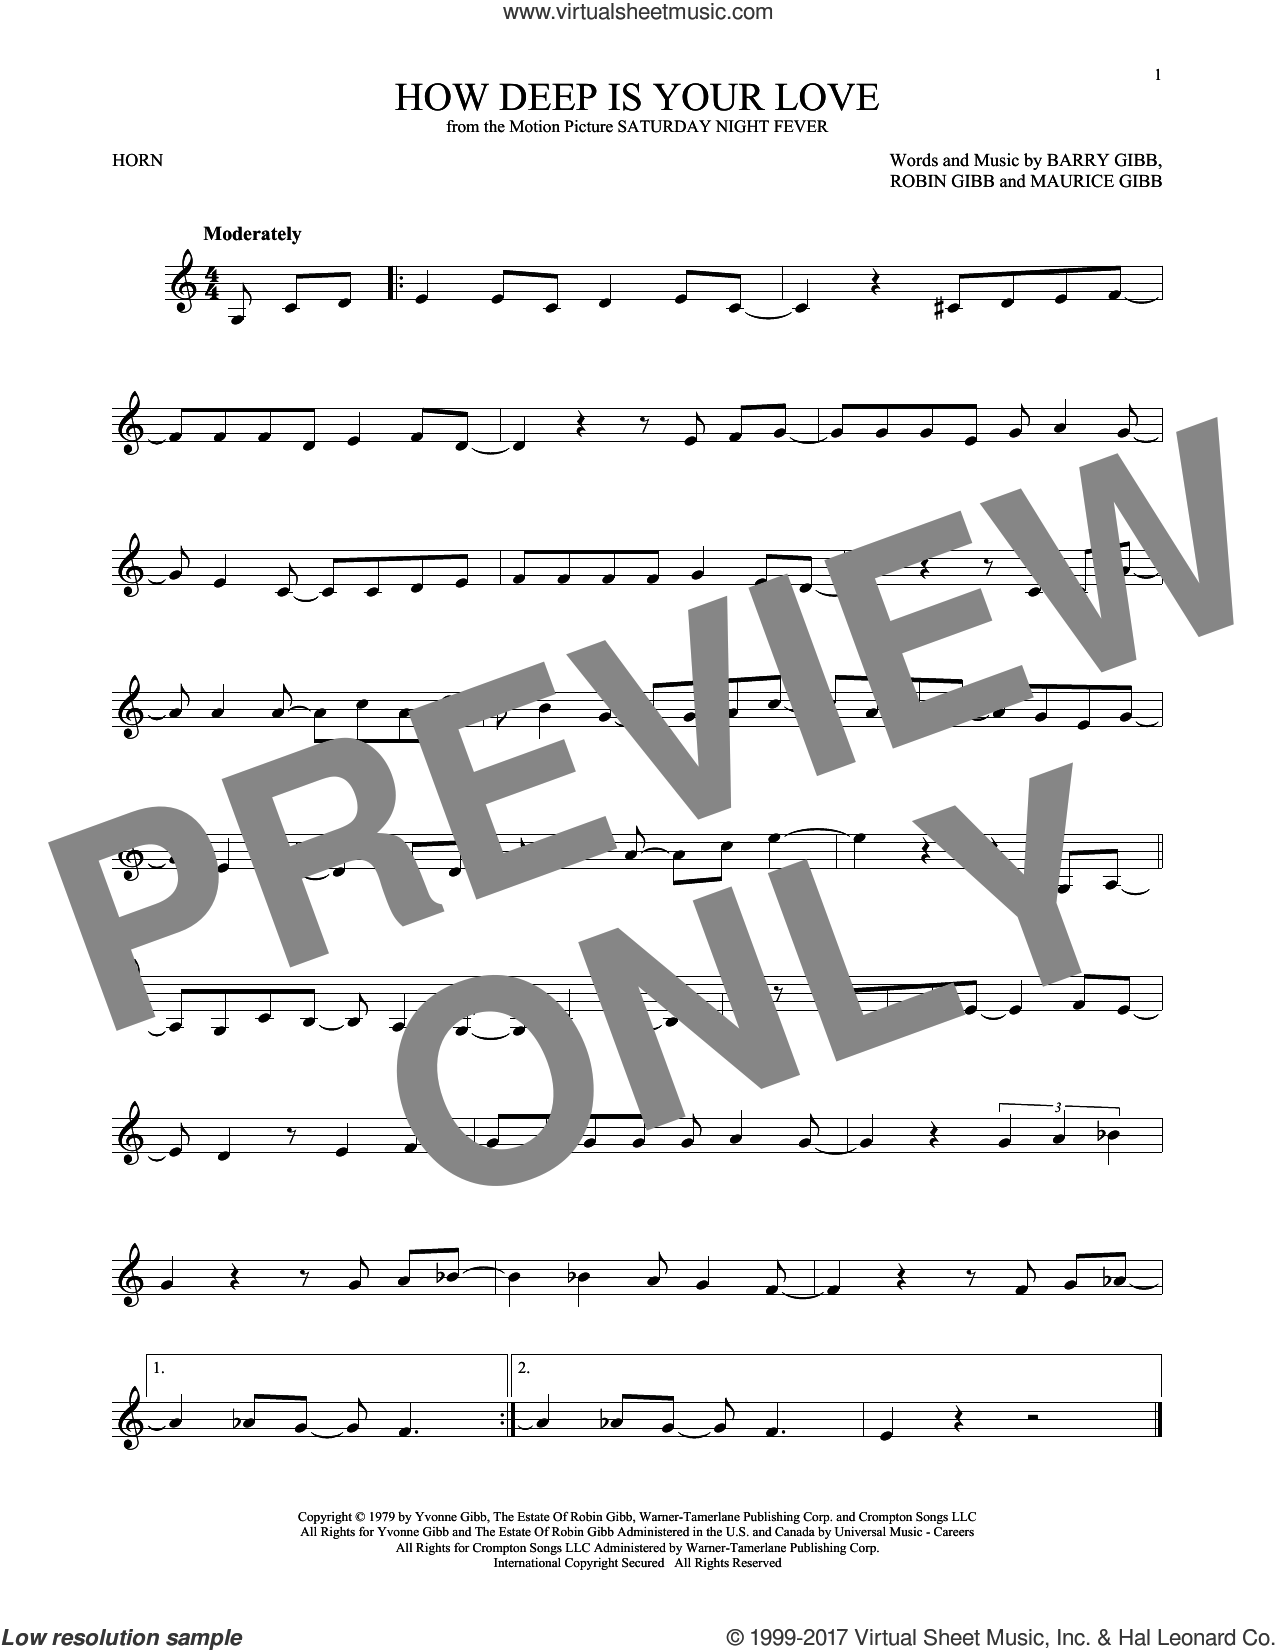 How Deep Is Your Love sheet music for horn solo by Barry Gibb, Bee Gees, Maurice Gibb and Robin Gibb, intermediate skill level